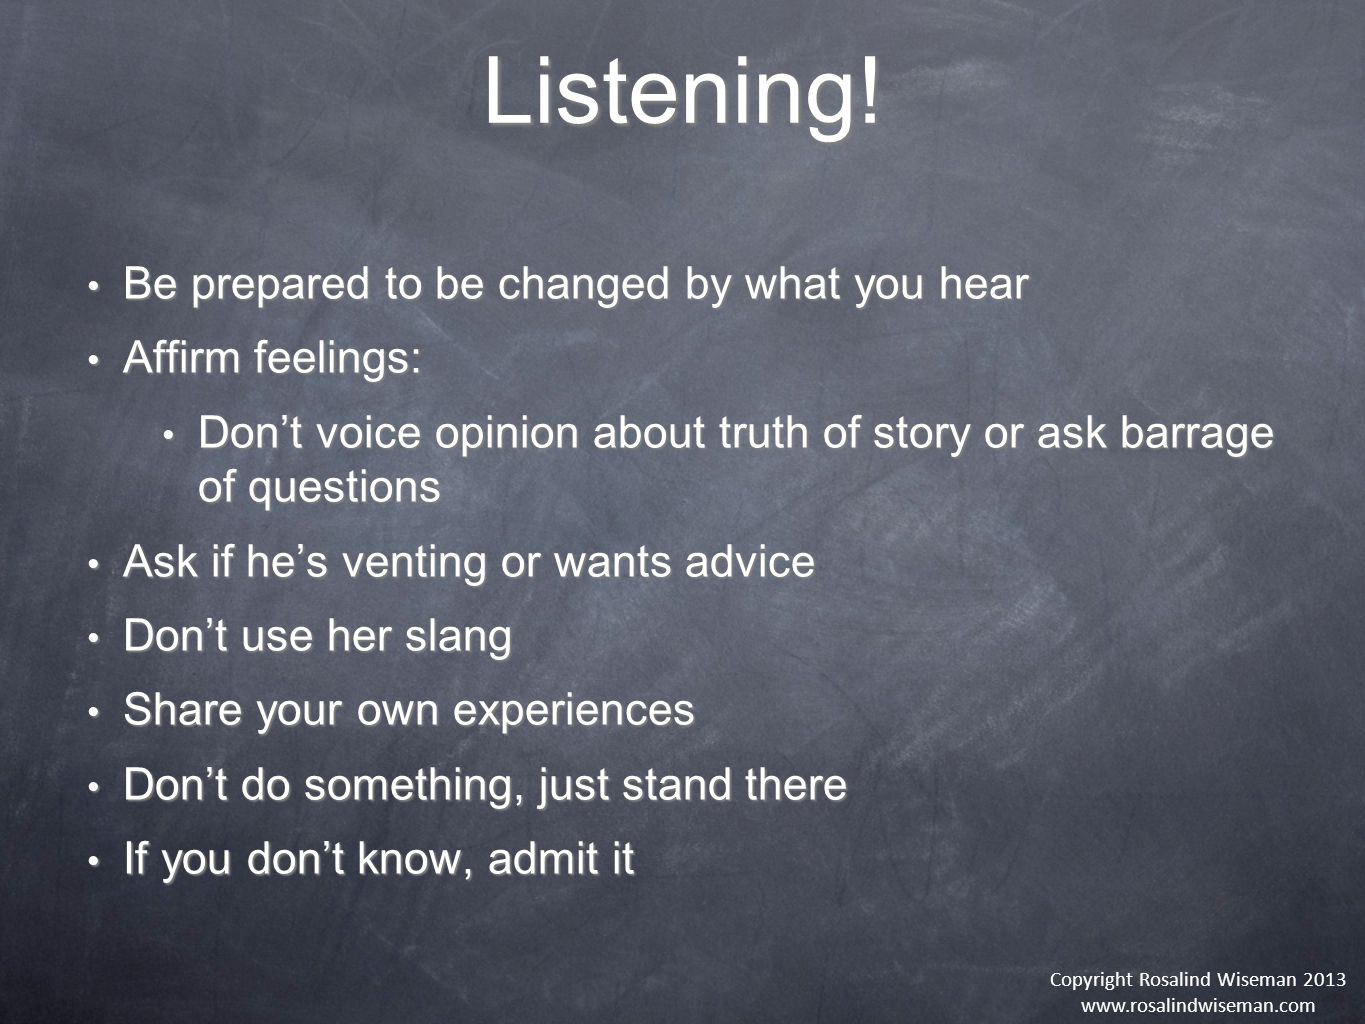 Listening! Be prepared to be changed by what you hear Be prepared to be changed by what you hear Affirm feelings: Affirm feelings: Don't voice opinion